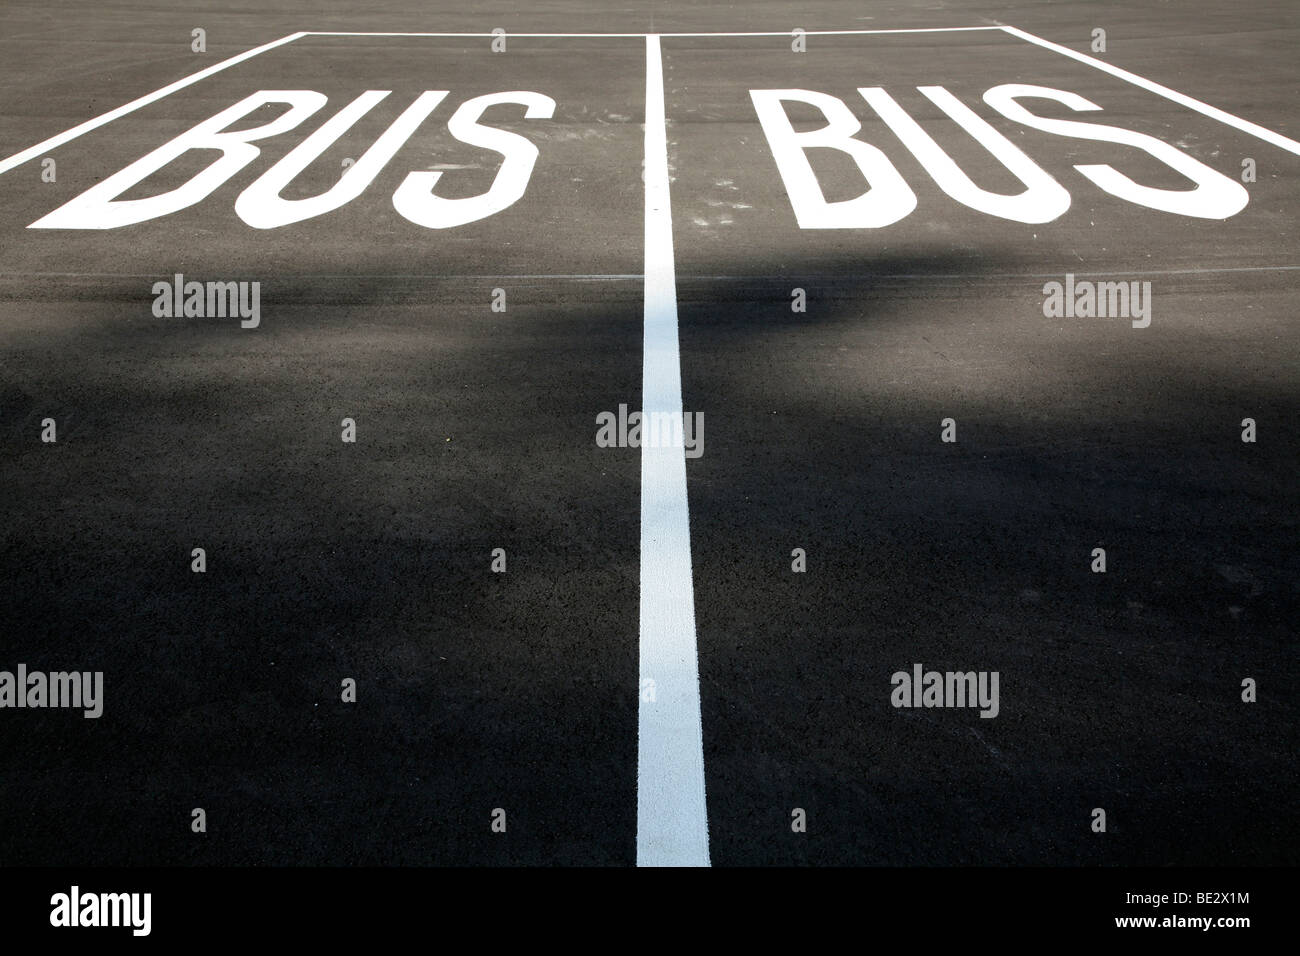 Bus parking spaces, Germany, Europe - Stock Image